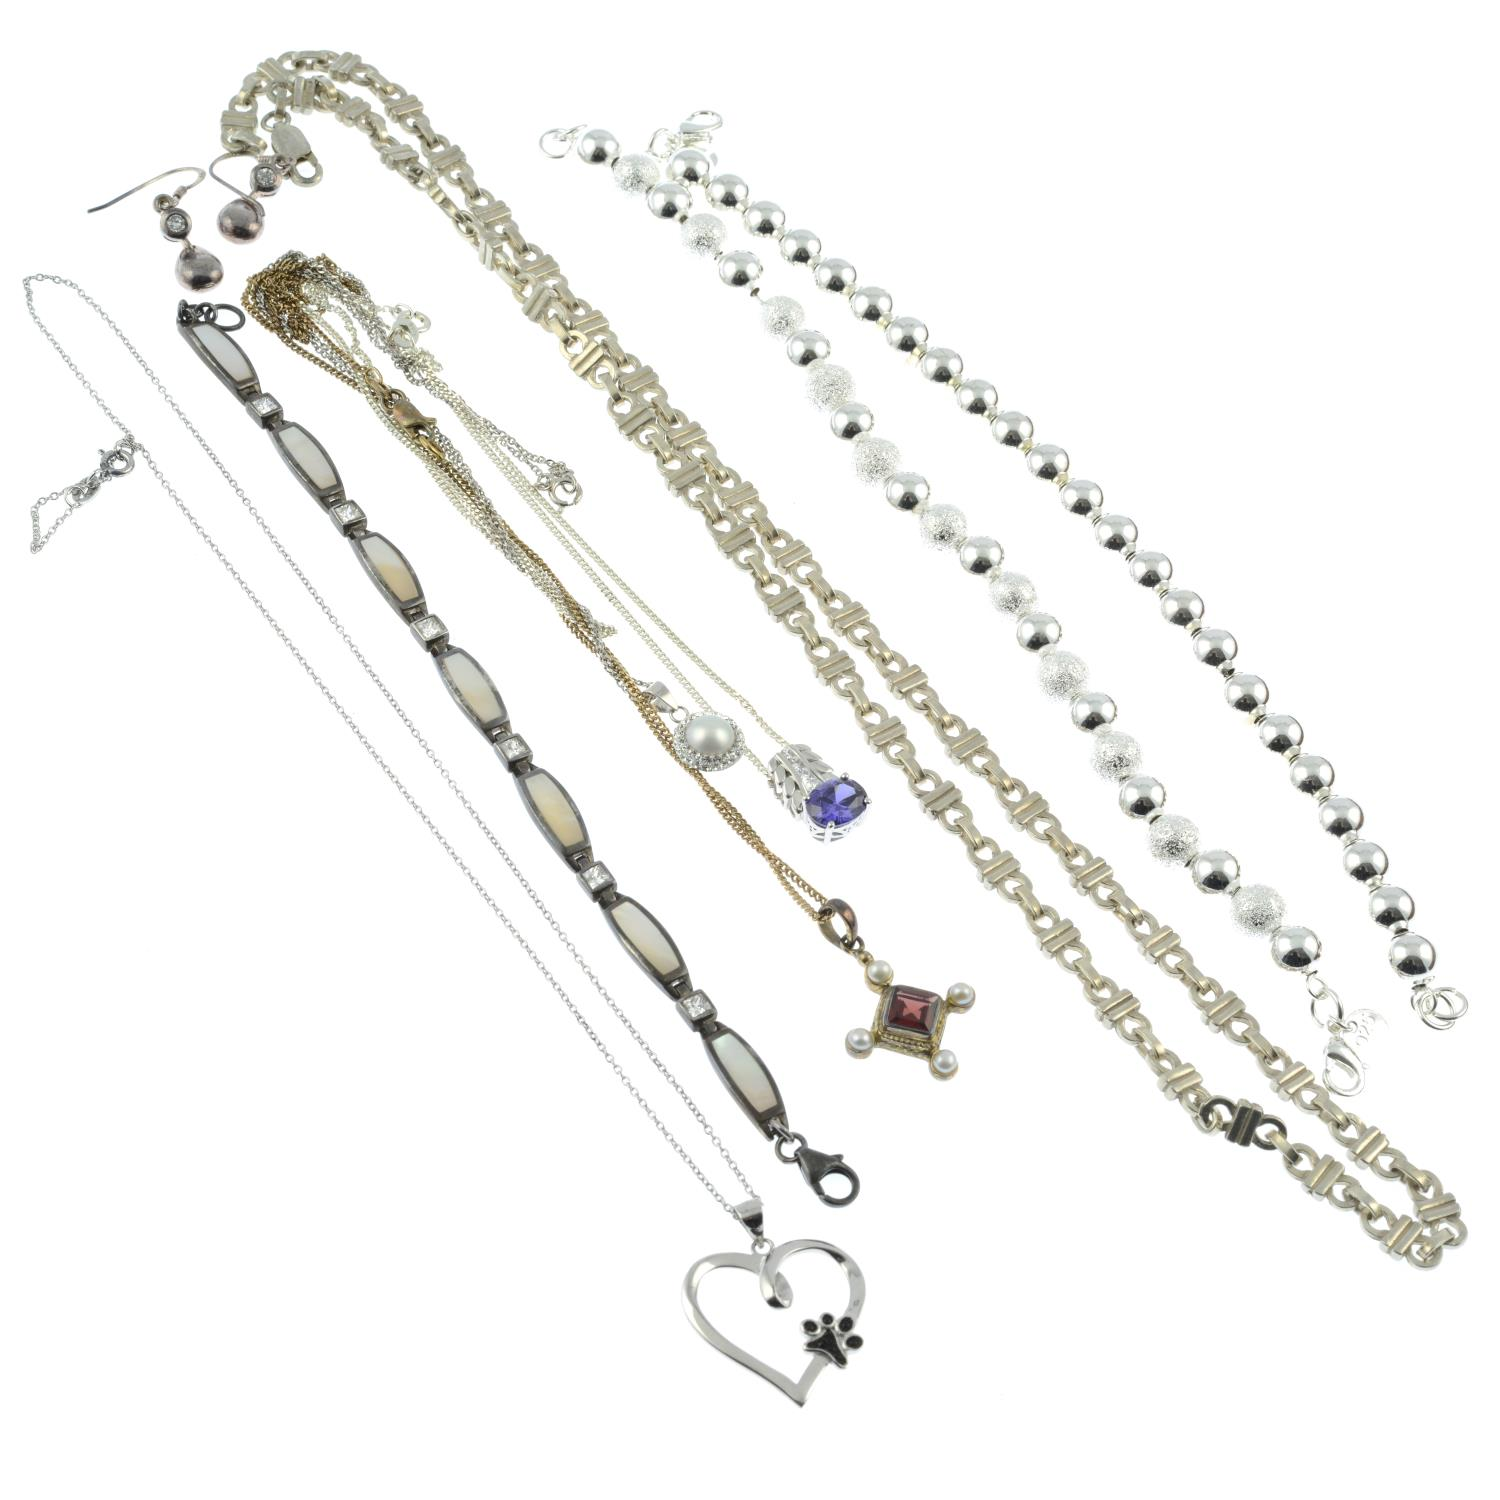 A selection of jewellery, to include a mother-of-pearl and cubic zirconia bracelet. - Image 2 of 2